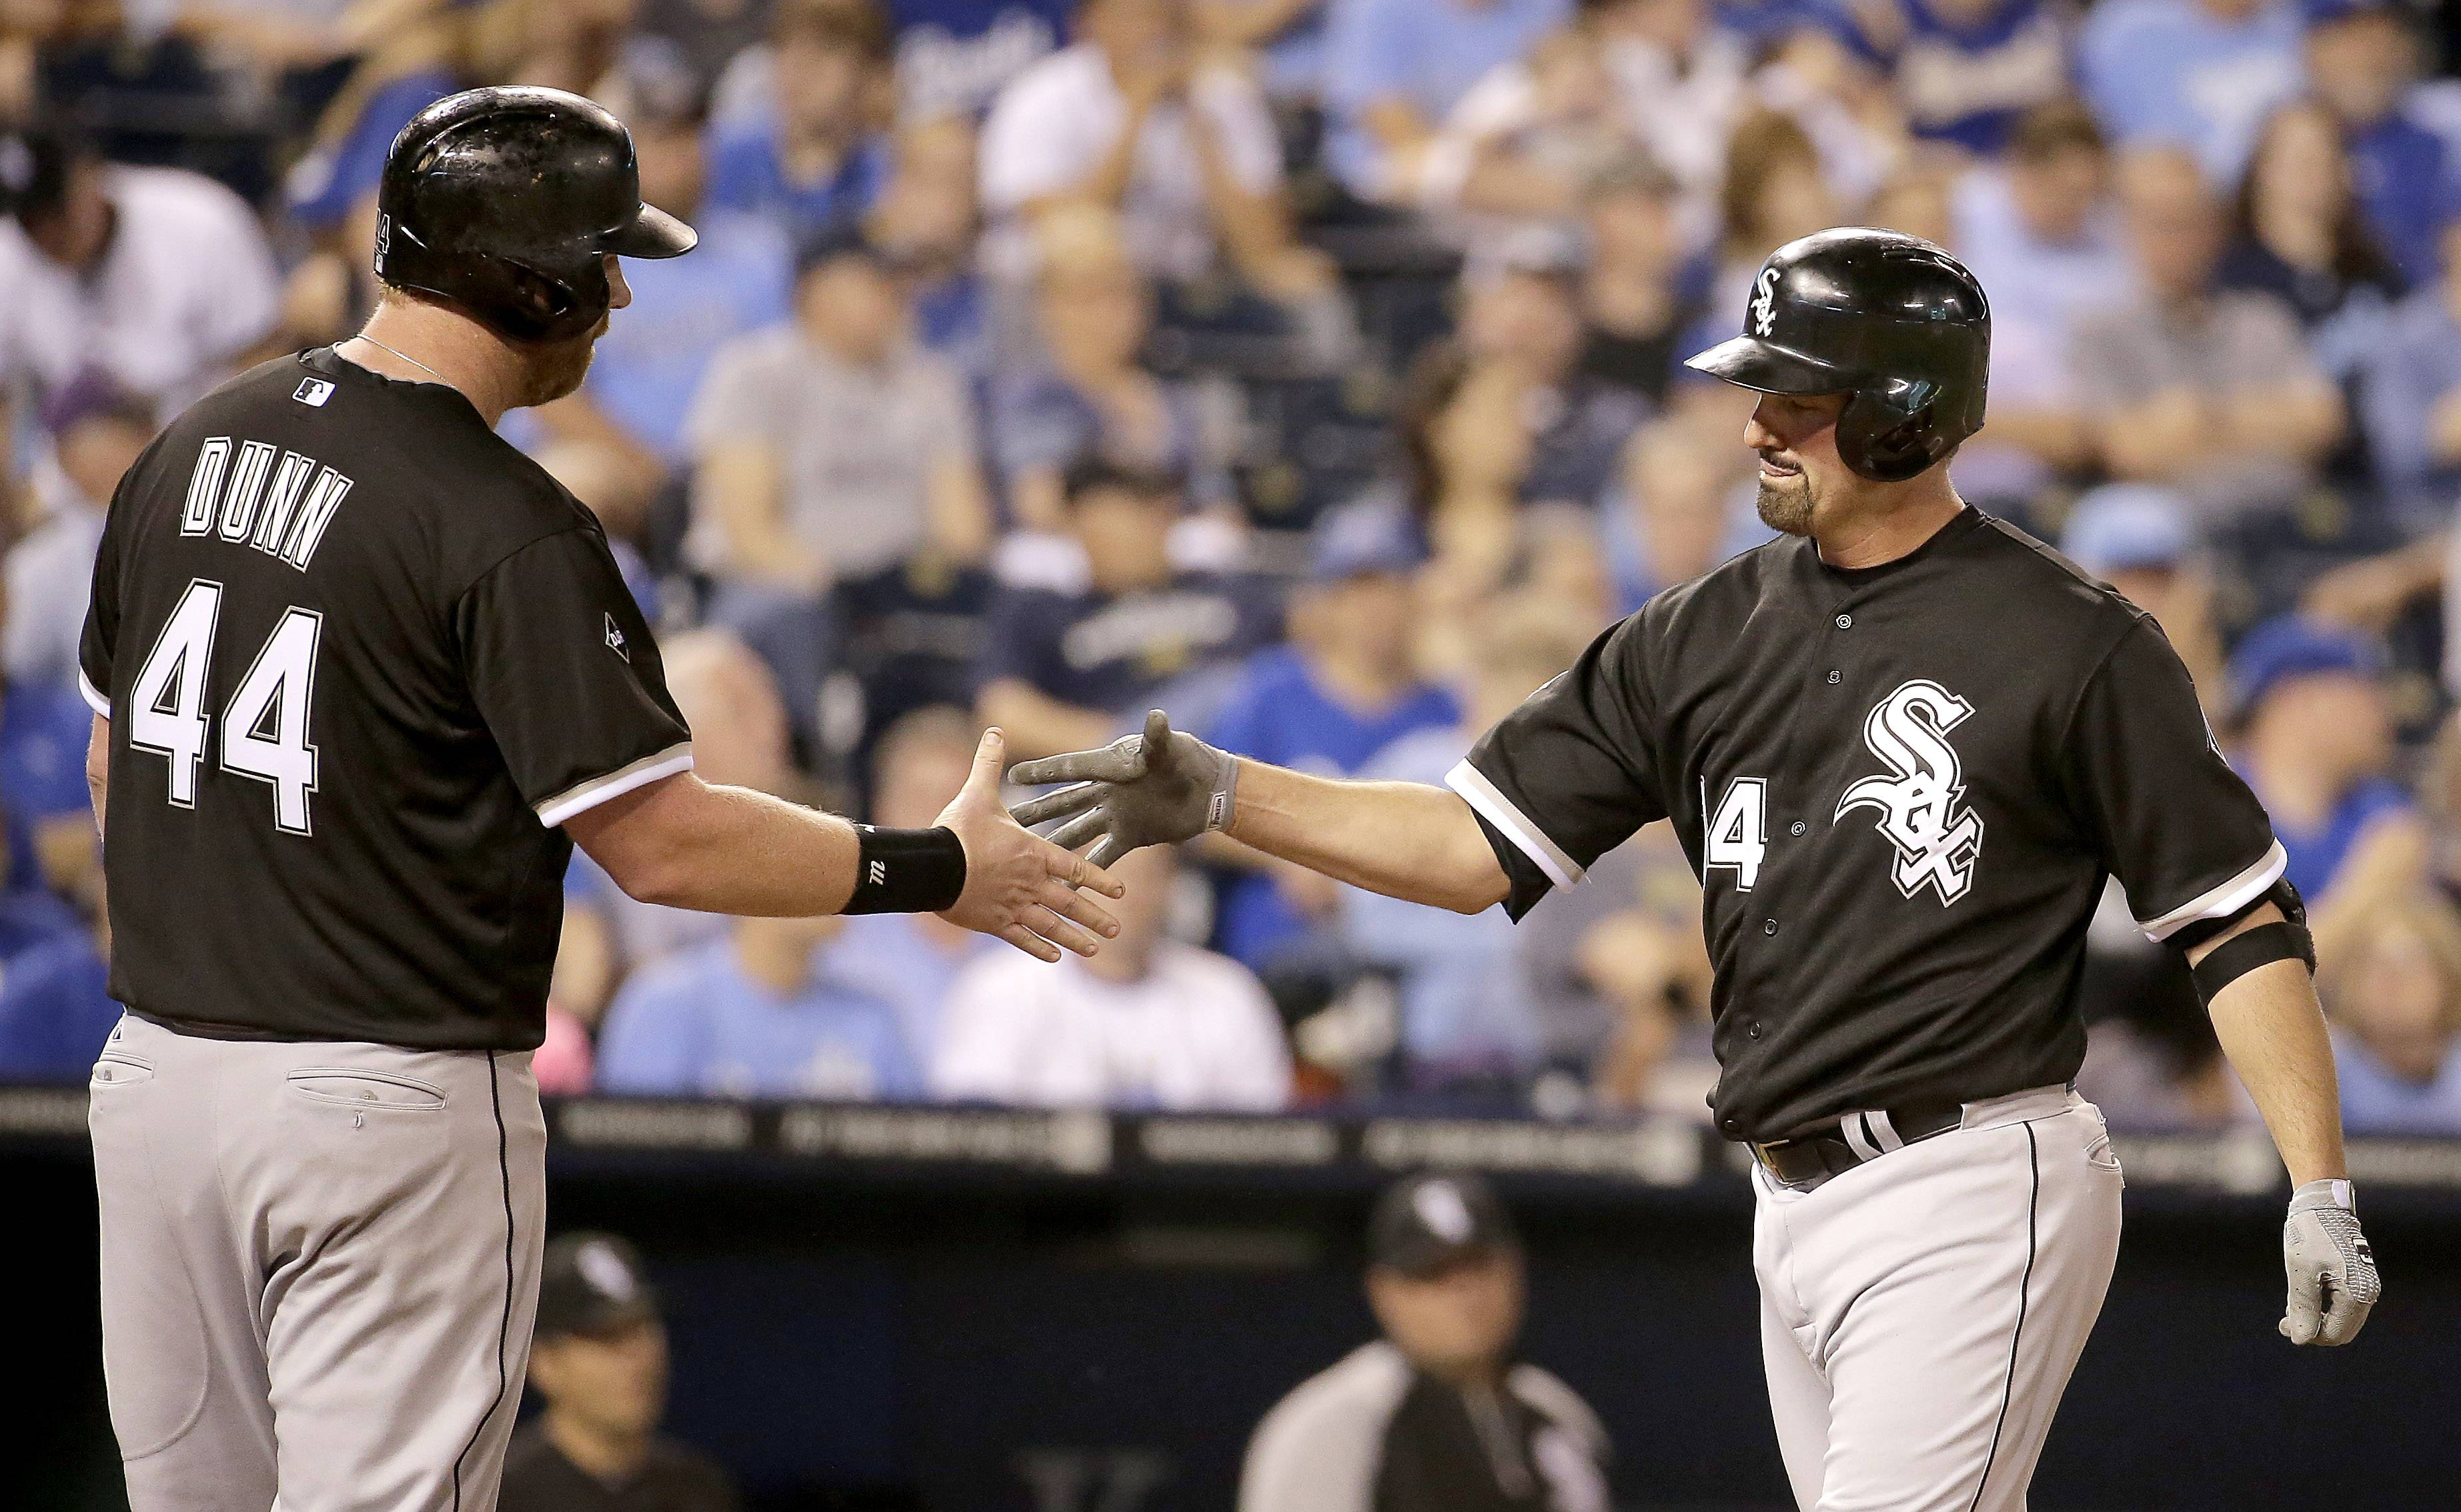 White Sox rally from 5-run hole, beat Royals 7-6